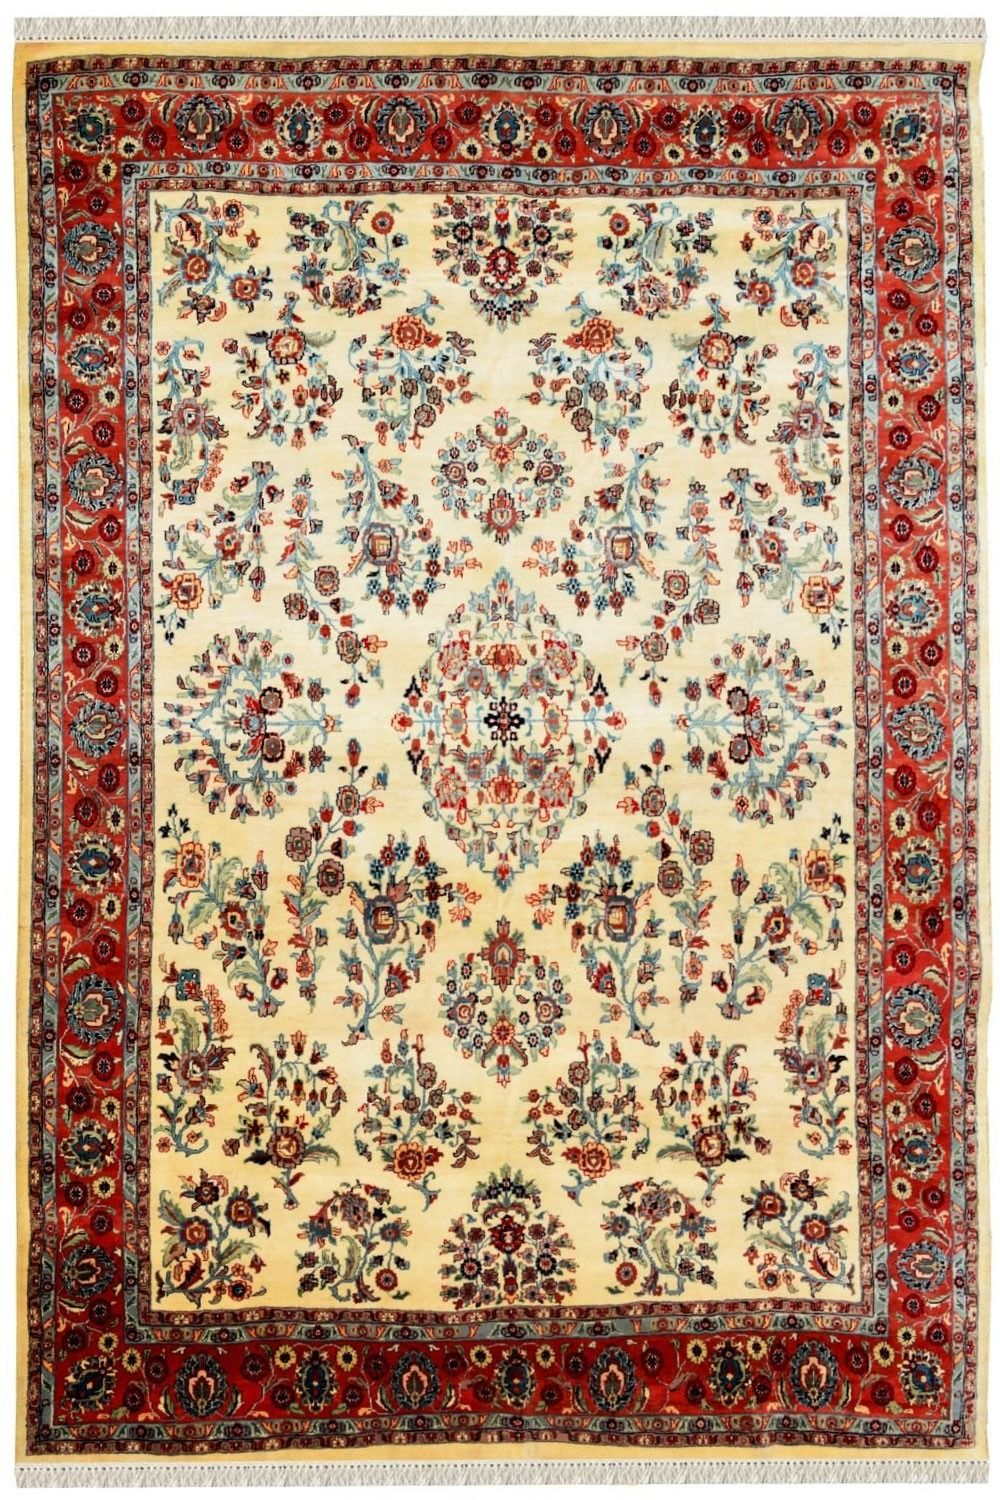 Ivory Phool Bagh Rug Shop Medium Size Wool Rugs Online With Images Carpet Shops Silk Area Rugs Wool Area Rugs